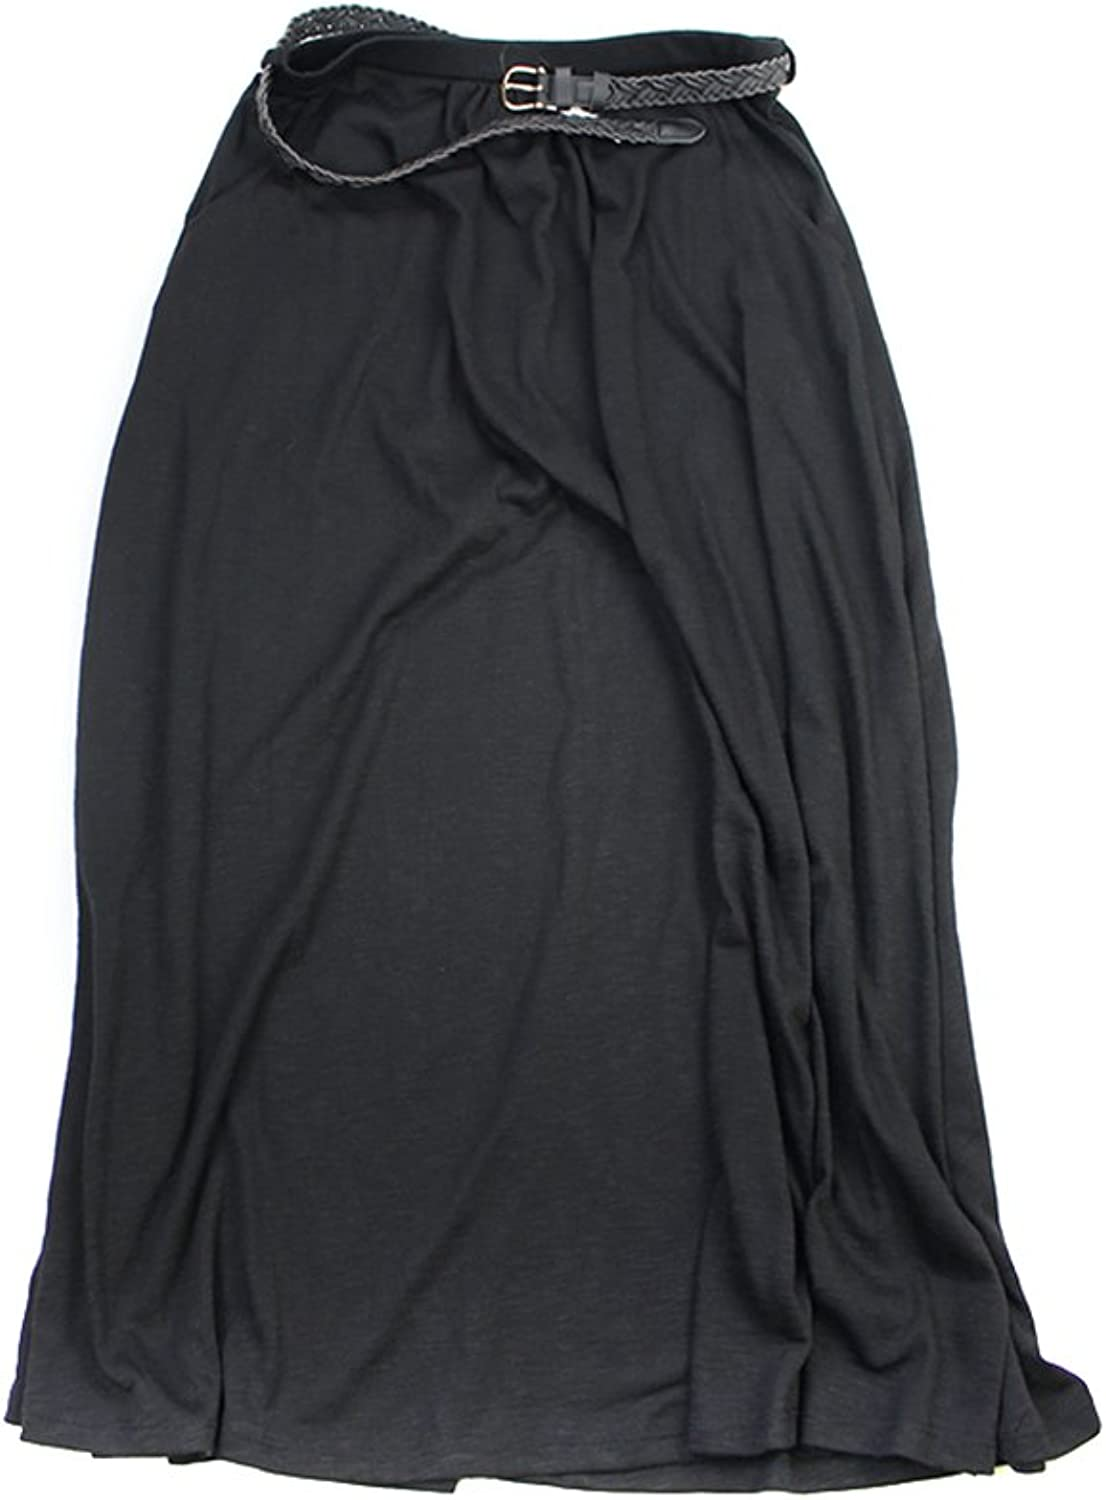 Style & Co. Black Belted Jersey Skirt S